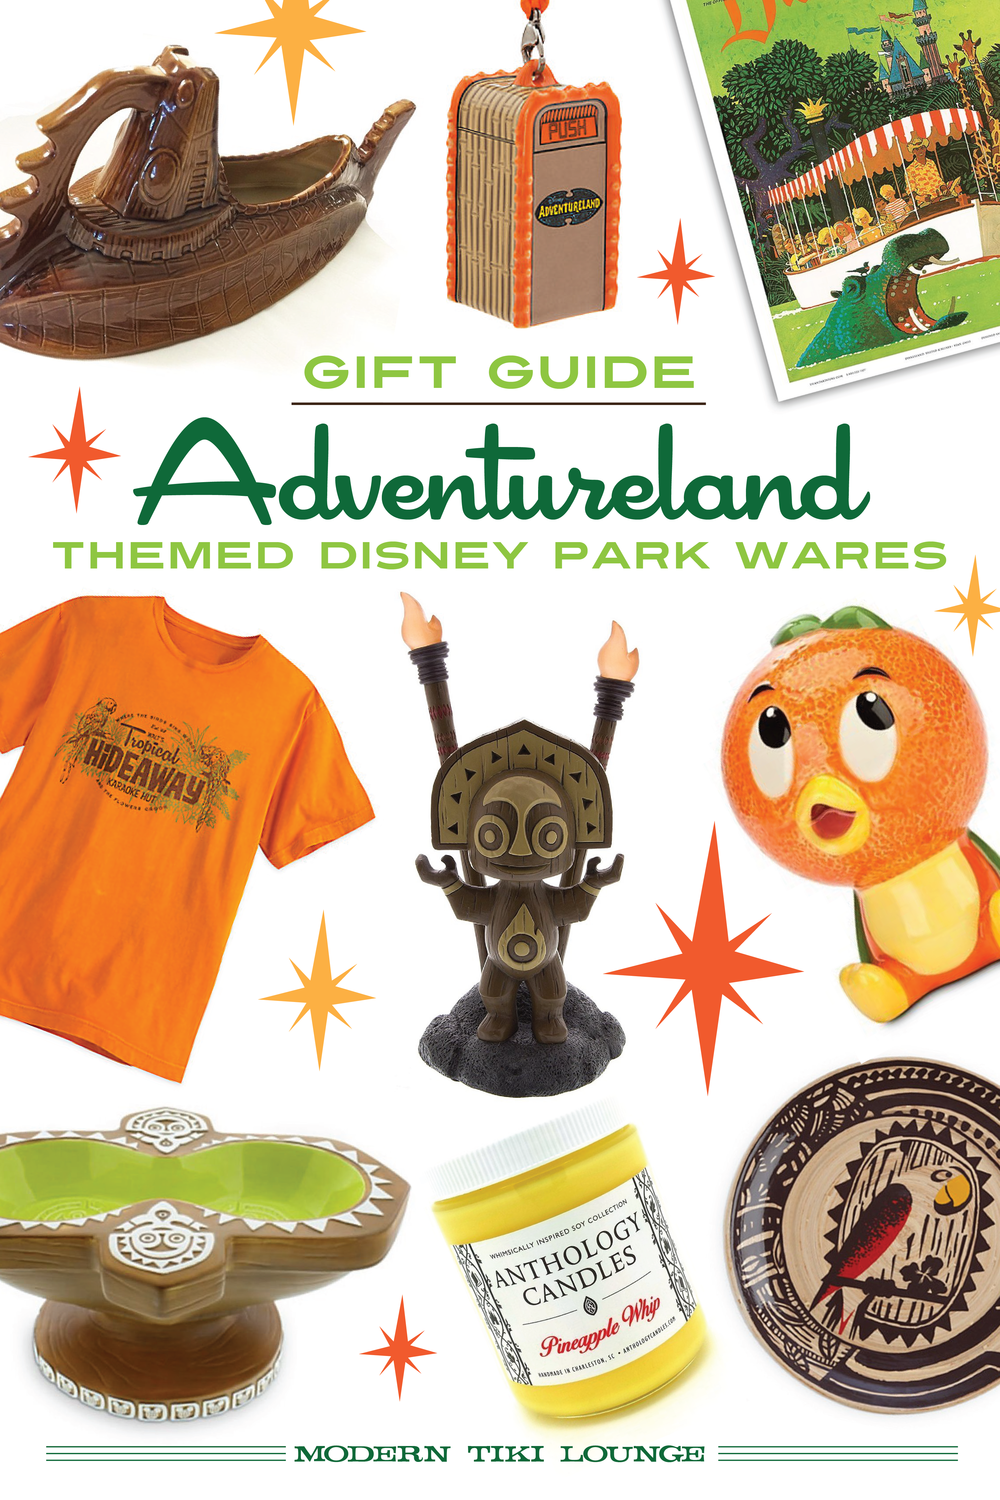 gift-guide-adventureland-disney-parks.jpg